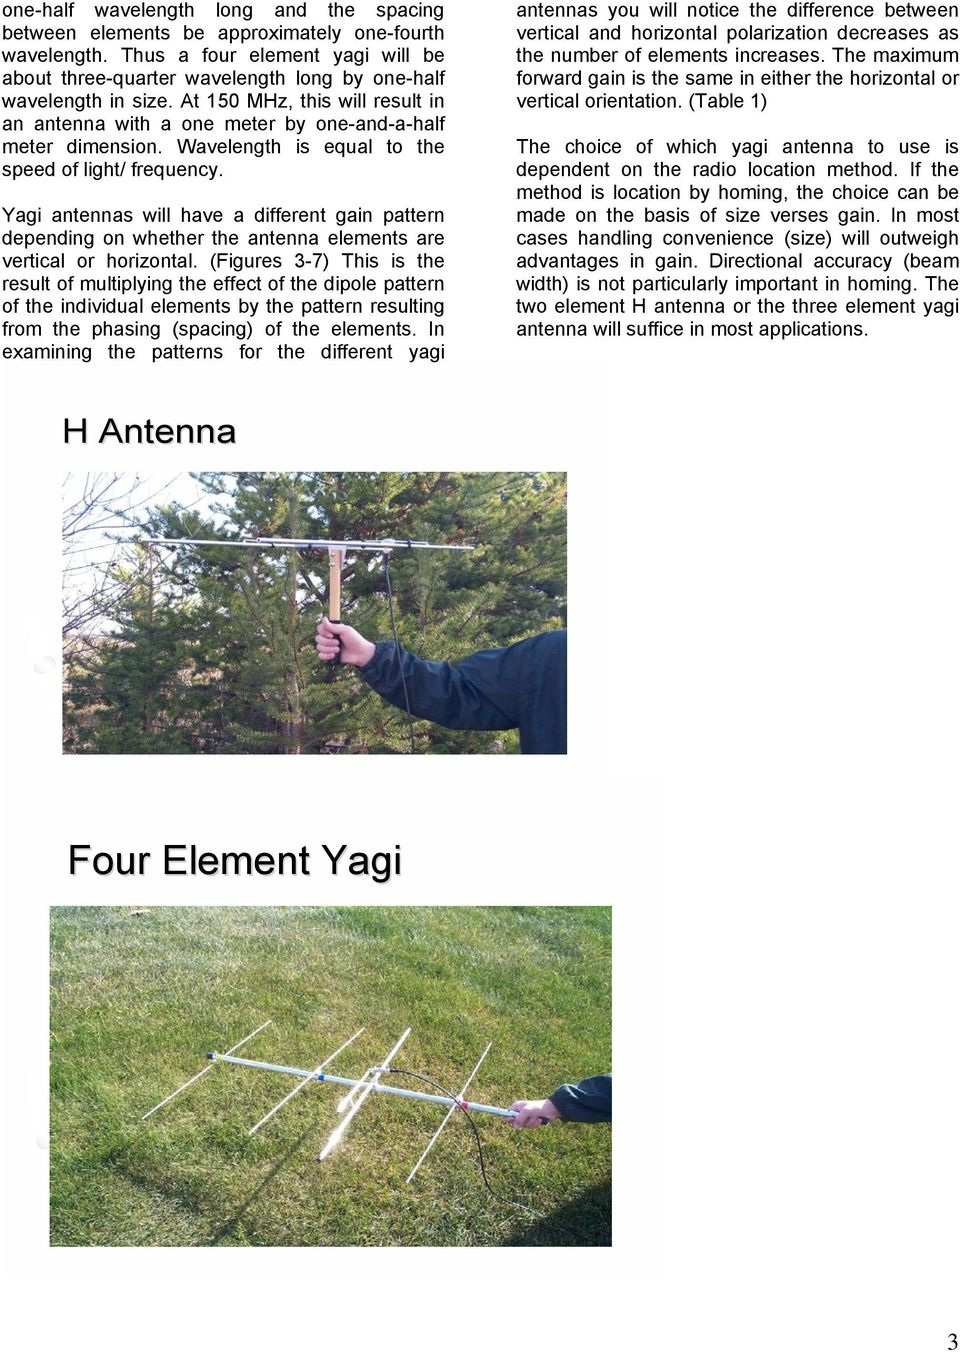 Yagi antennas will have a different gain pattern depending on whether the antenna elements are vertical or horizontal.